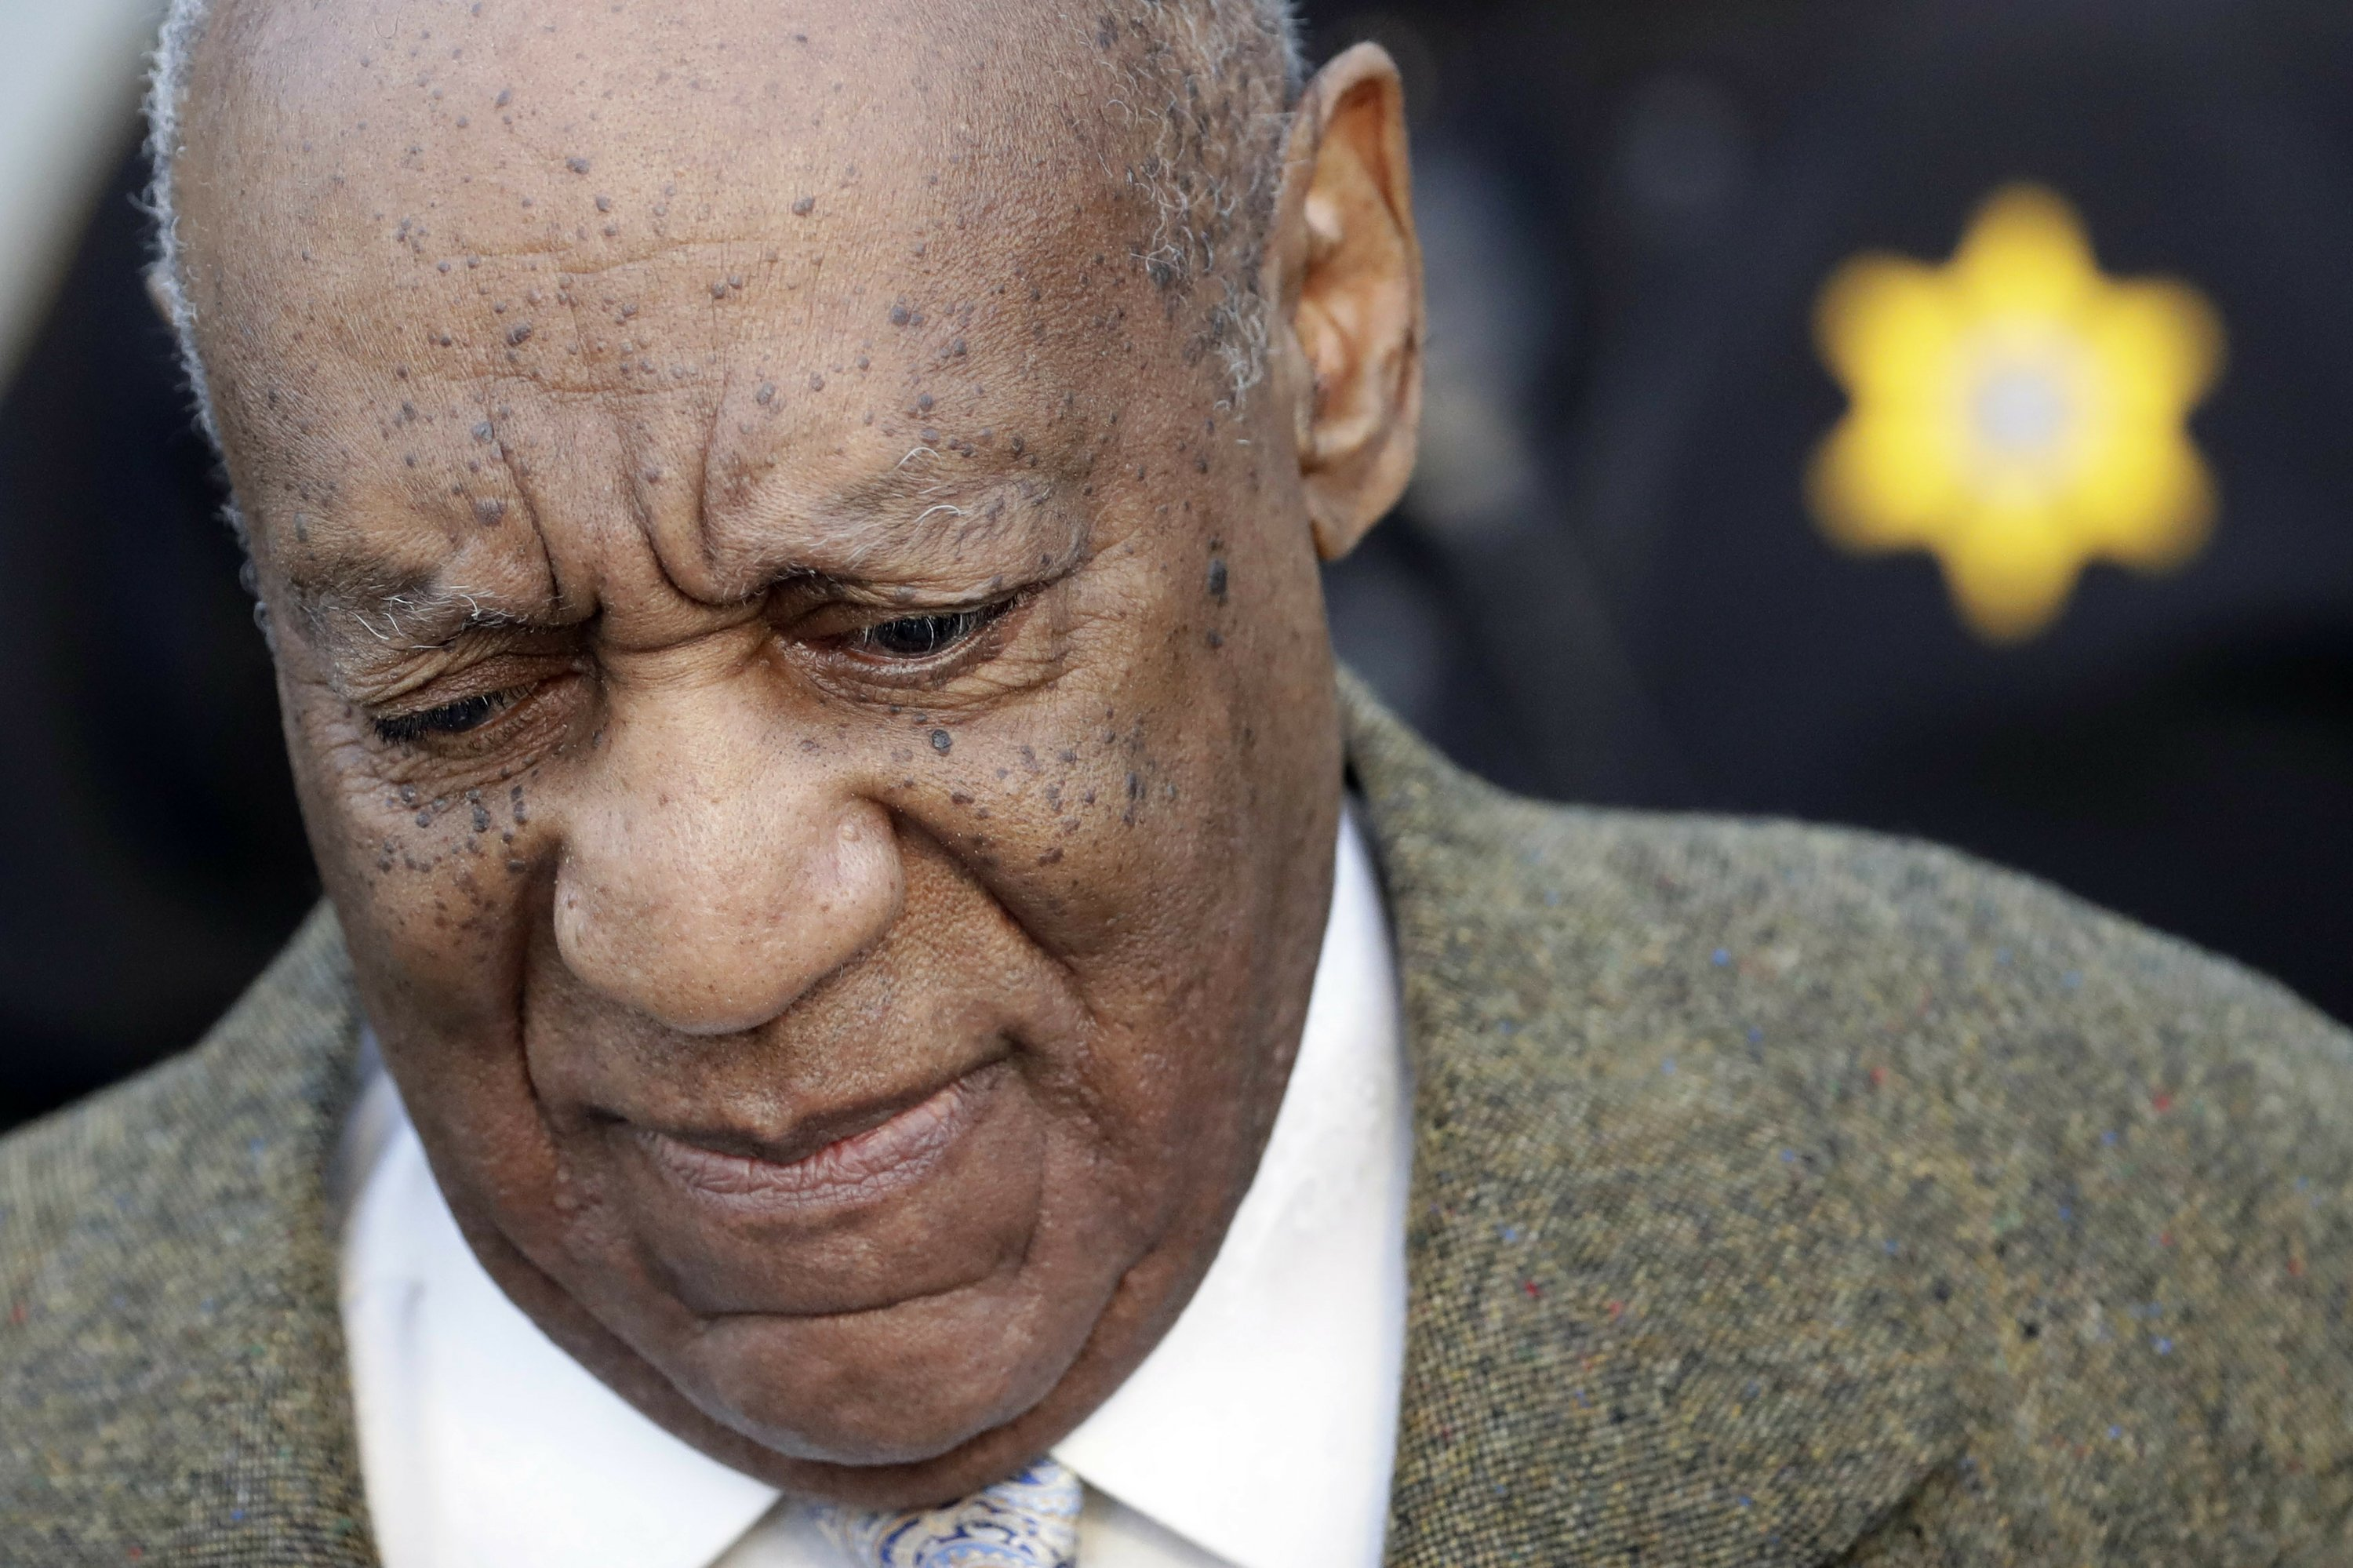 Prosecutors push judge to let other Cosby accusers testify